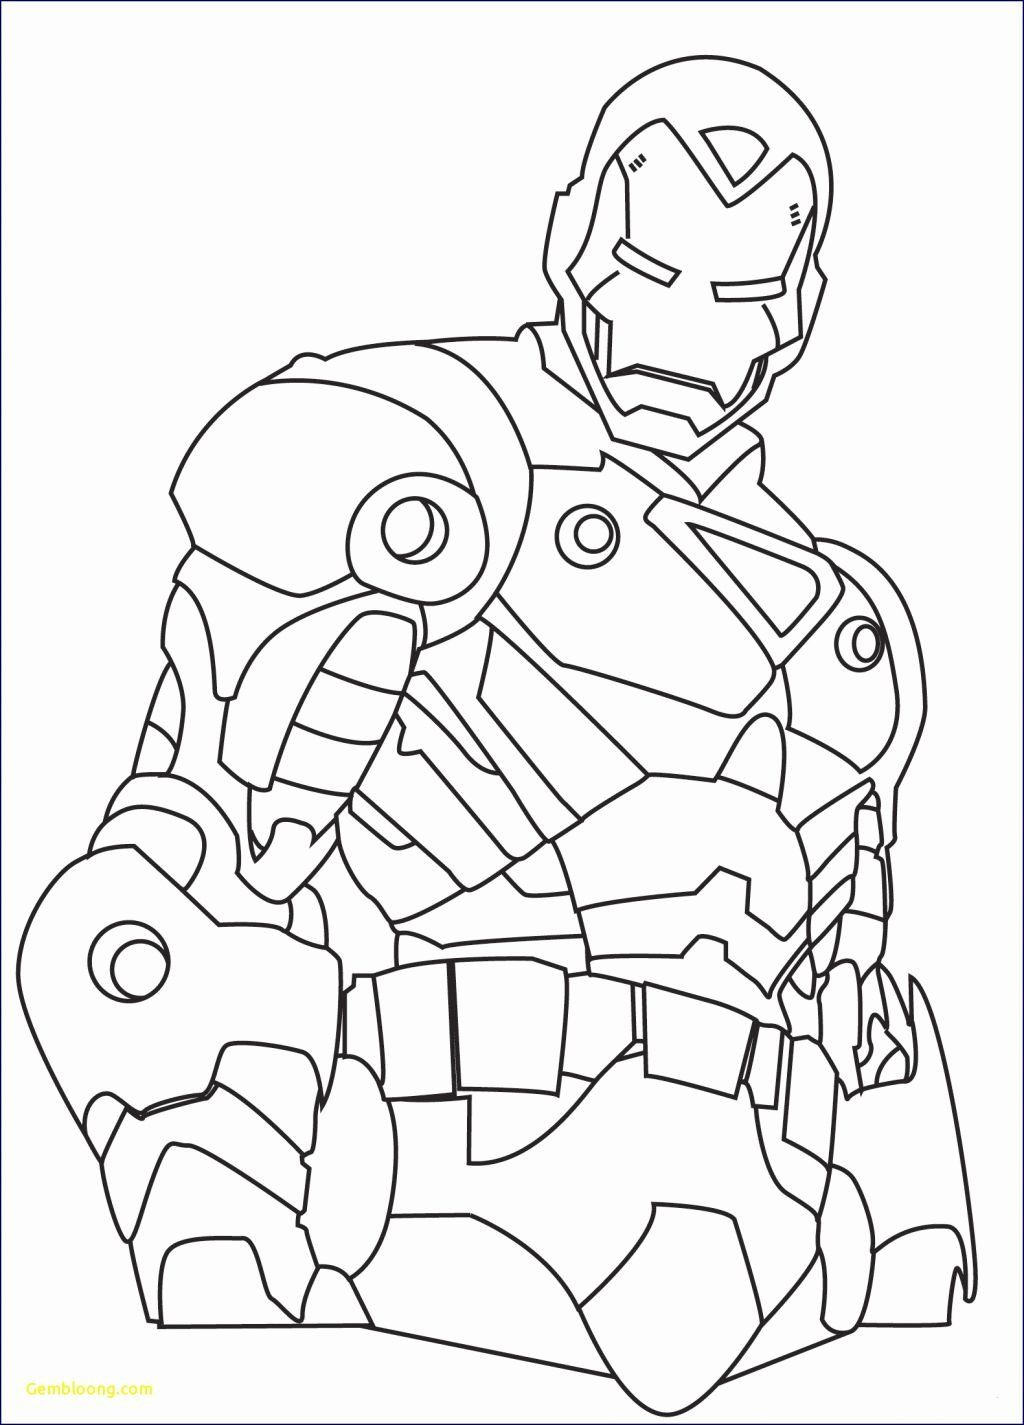 Lego Batman Coloring Book Fresh Coloring Pages Free Batman Coloring Pages Lovely 21 Cool Unicorn Coloring Pages Superhero Coloring Superhero Coloring Pages